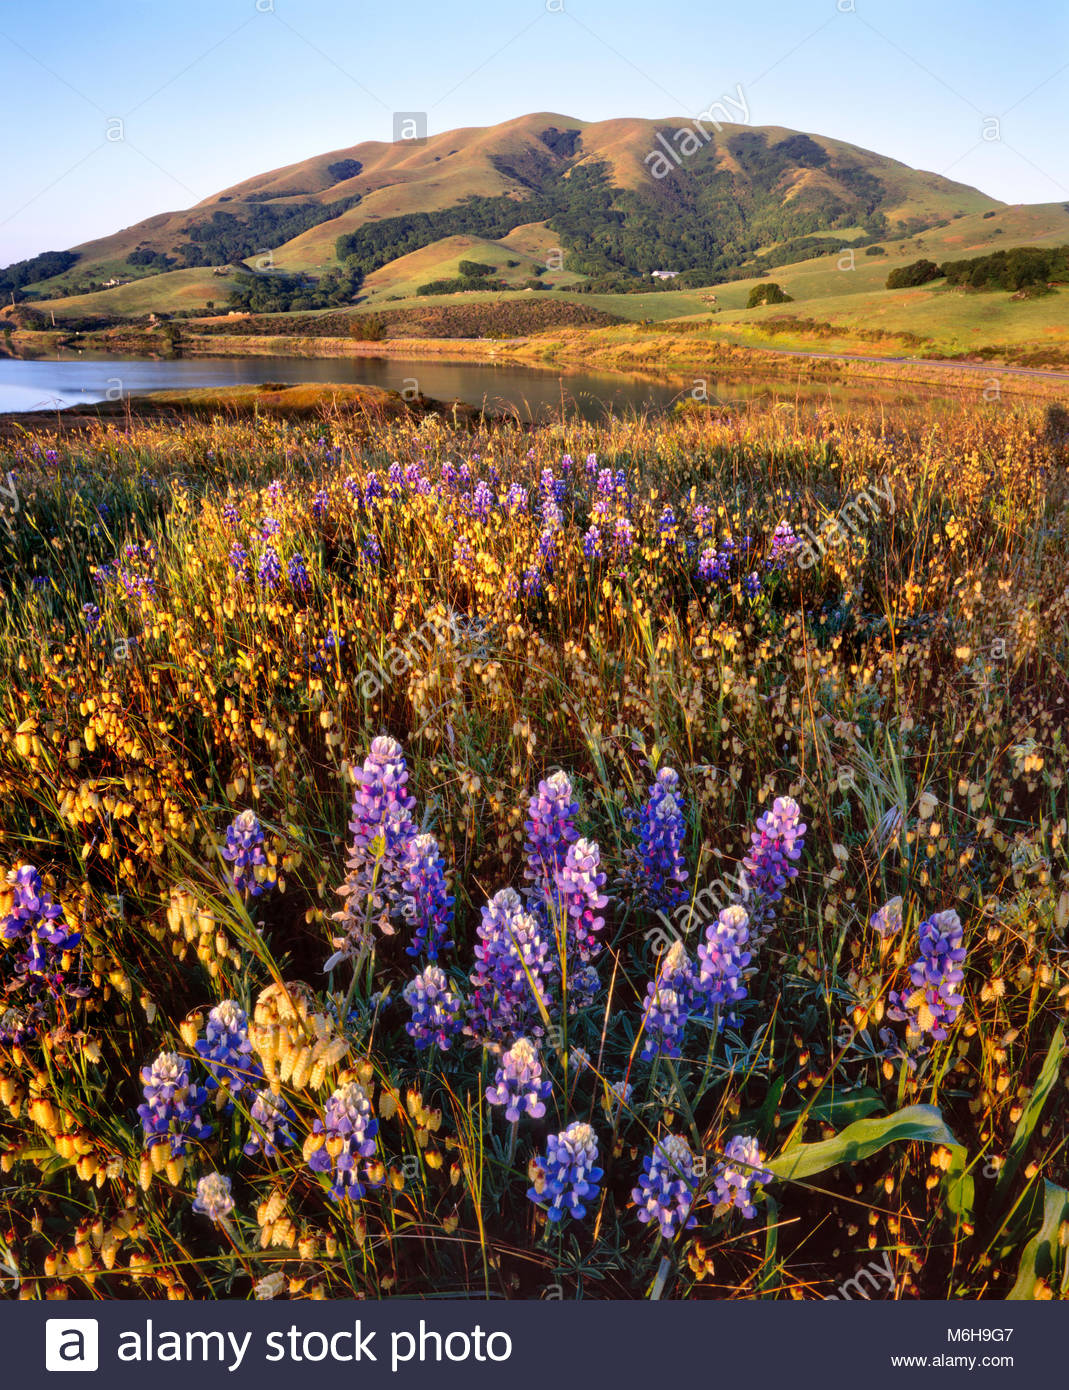 Wildflowers on Knoll and Black Mountain, Nicasio, Marin County, California - Stock Image